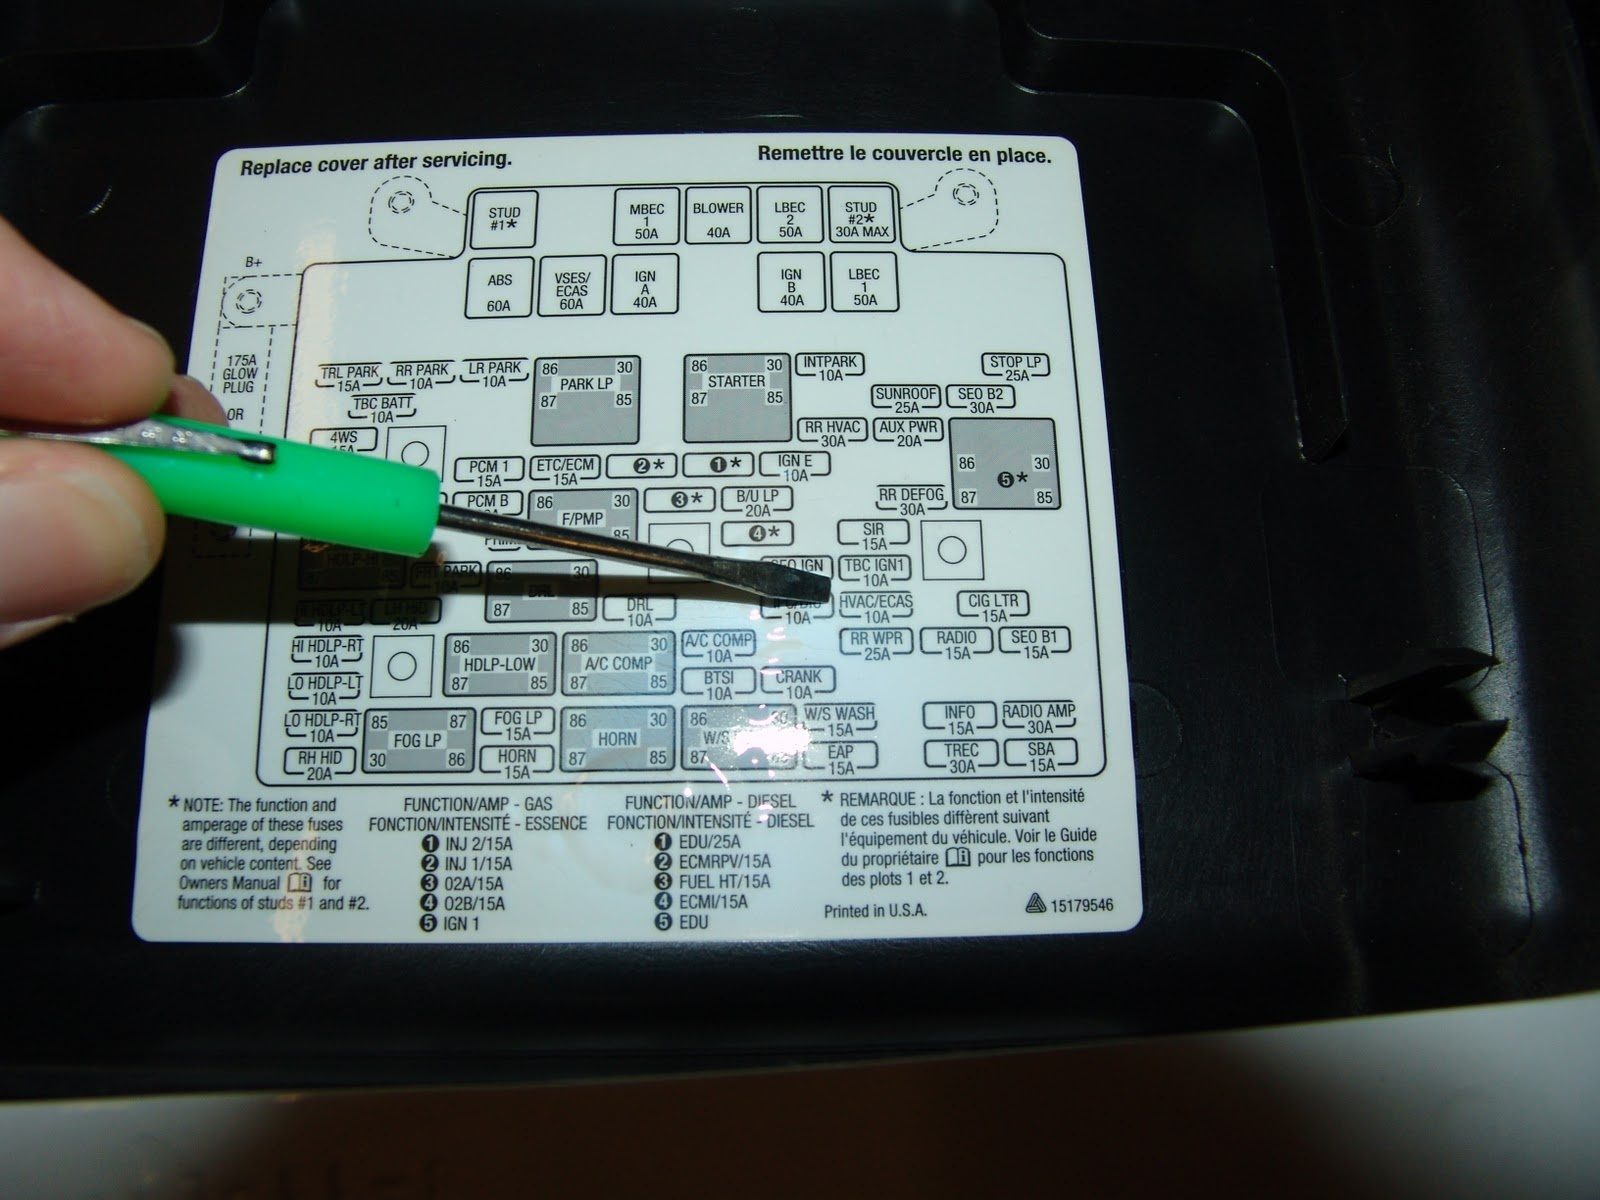 radio wiring diagram for 2006 chevy silverado ceiling fan with light two switches cadillac deville questions - my cadilac 2004 suddenly stopped blowing heat and defrost ...